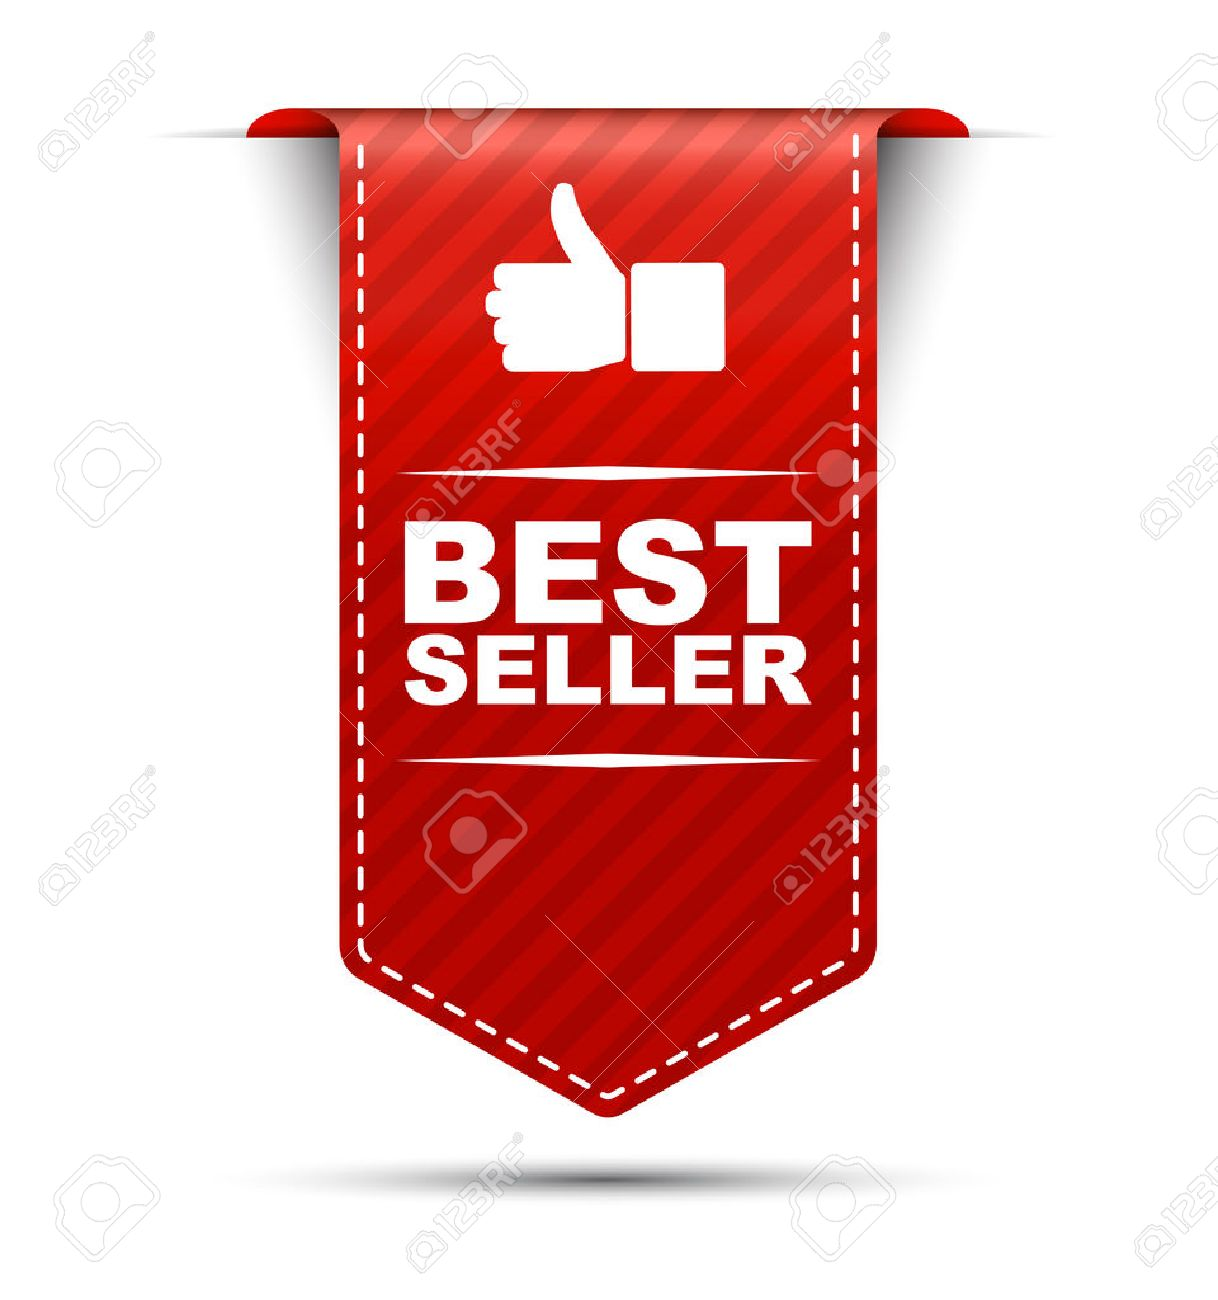 This is red vector banner design best seller - 55019648